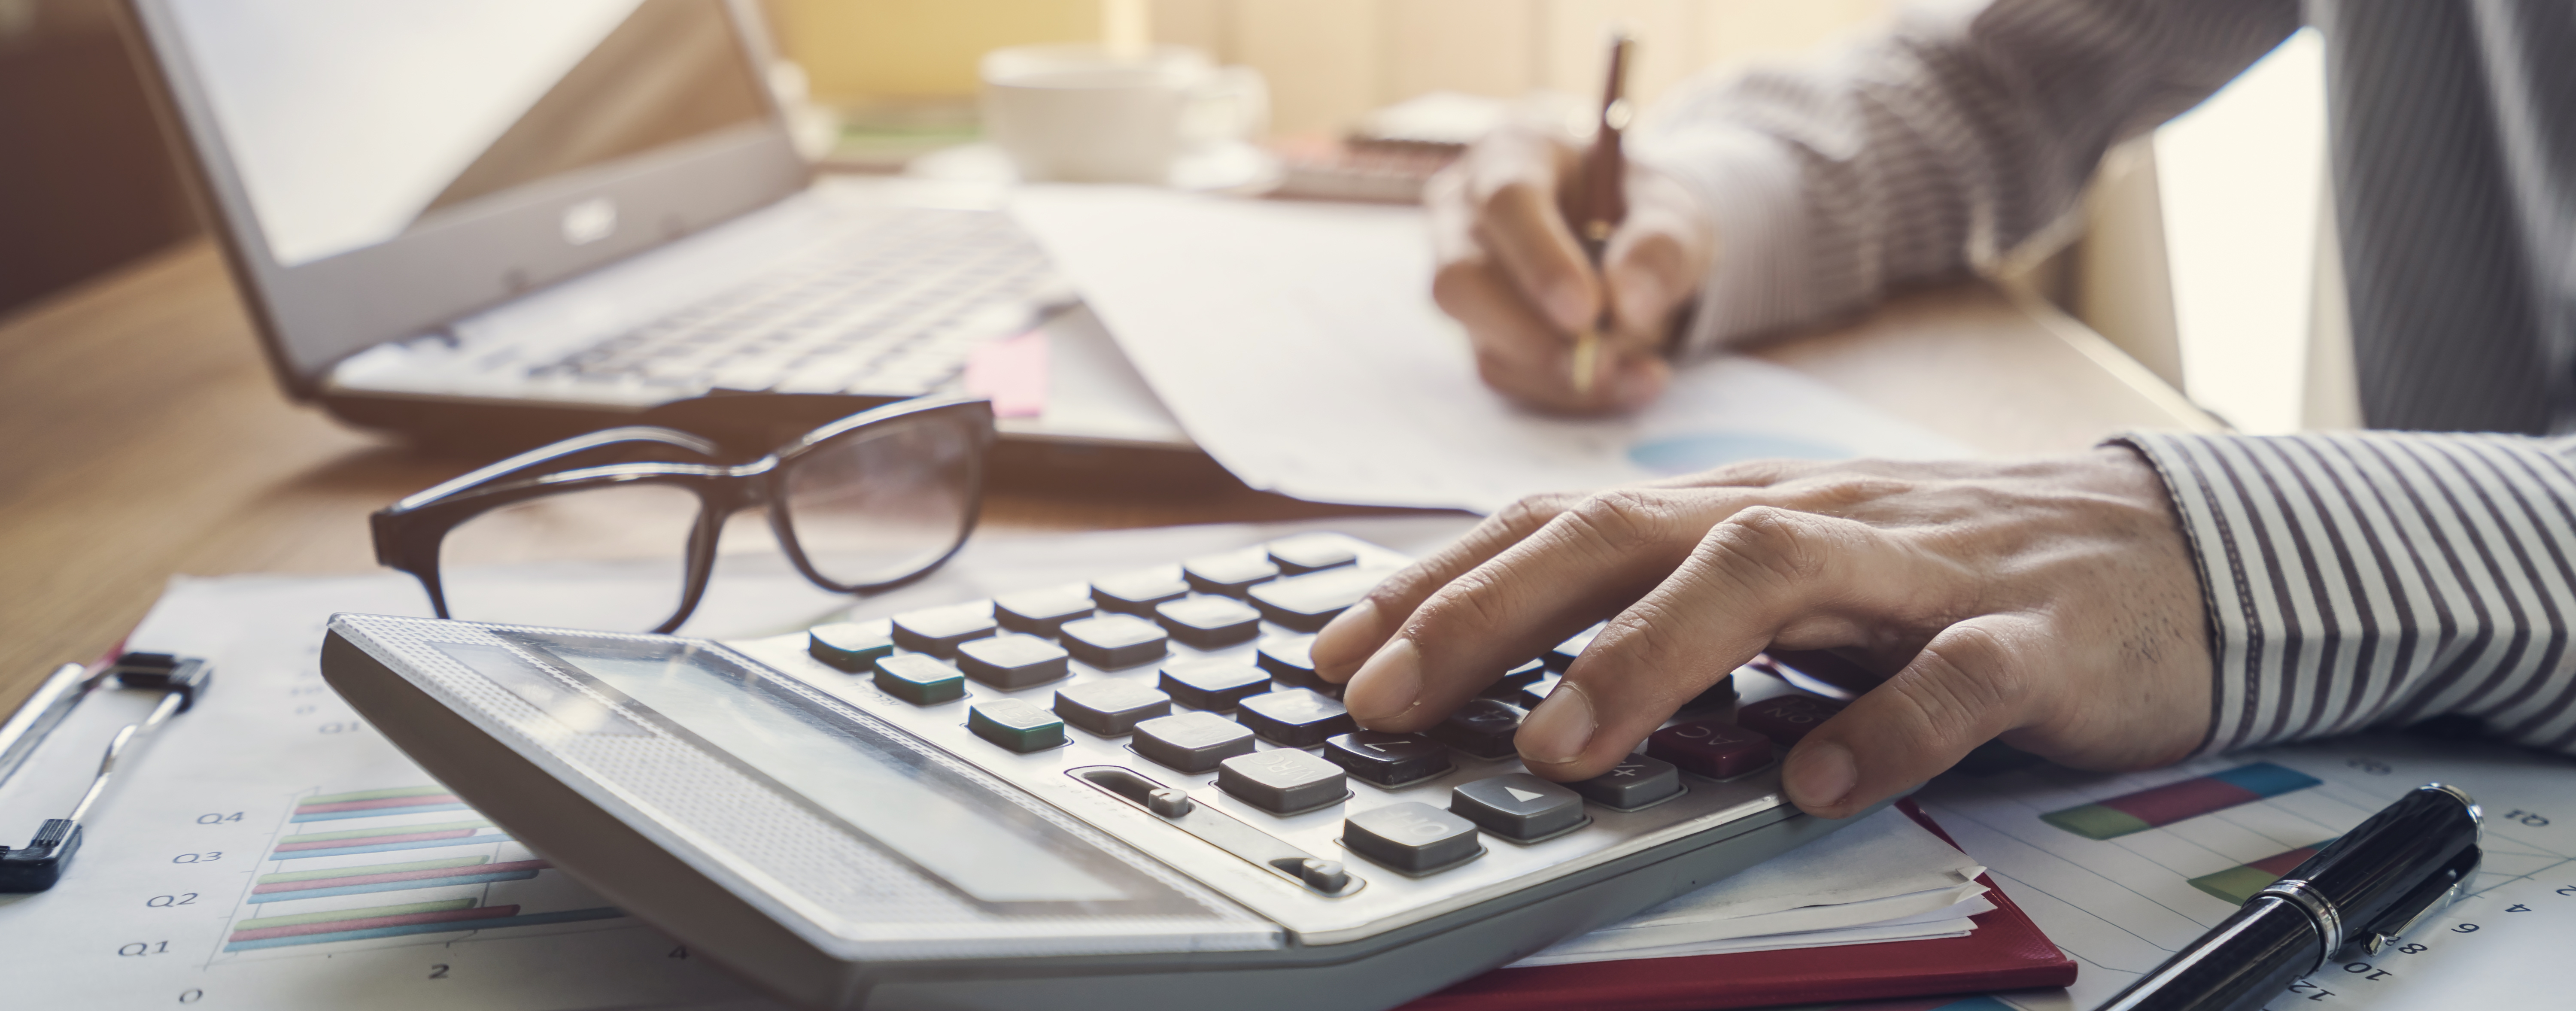 Man's hands typing on calculator with financial documents, glasses and a laptop on the desk.